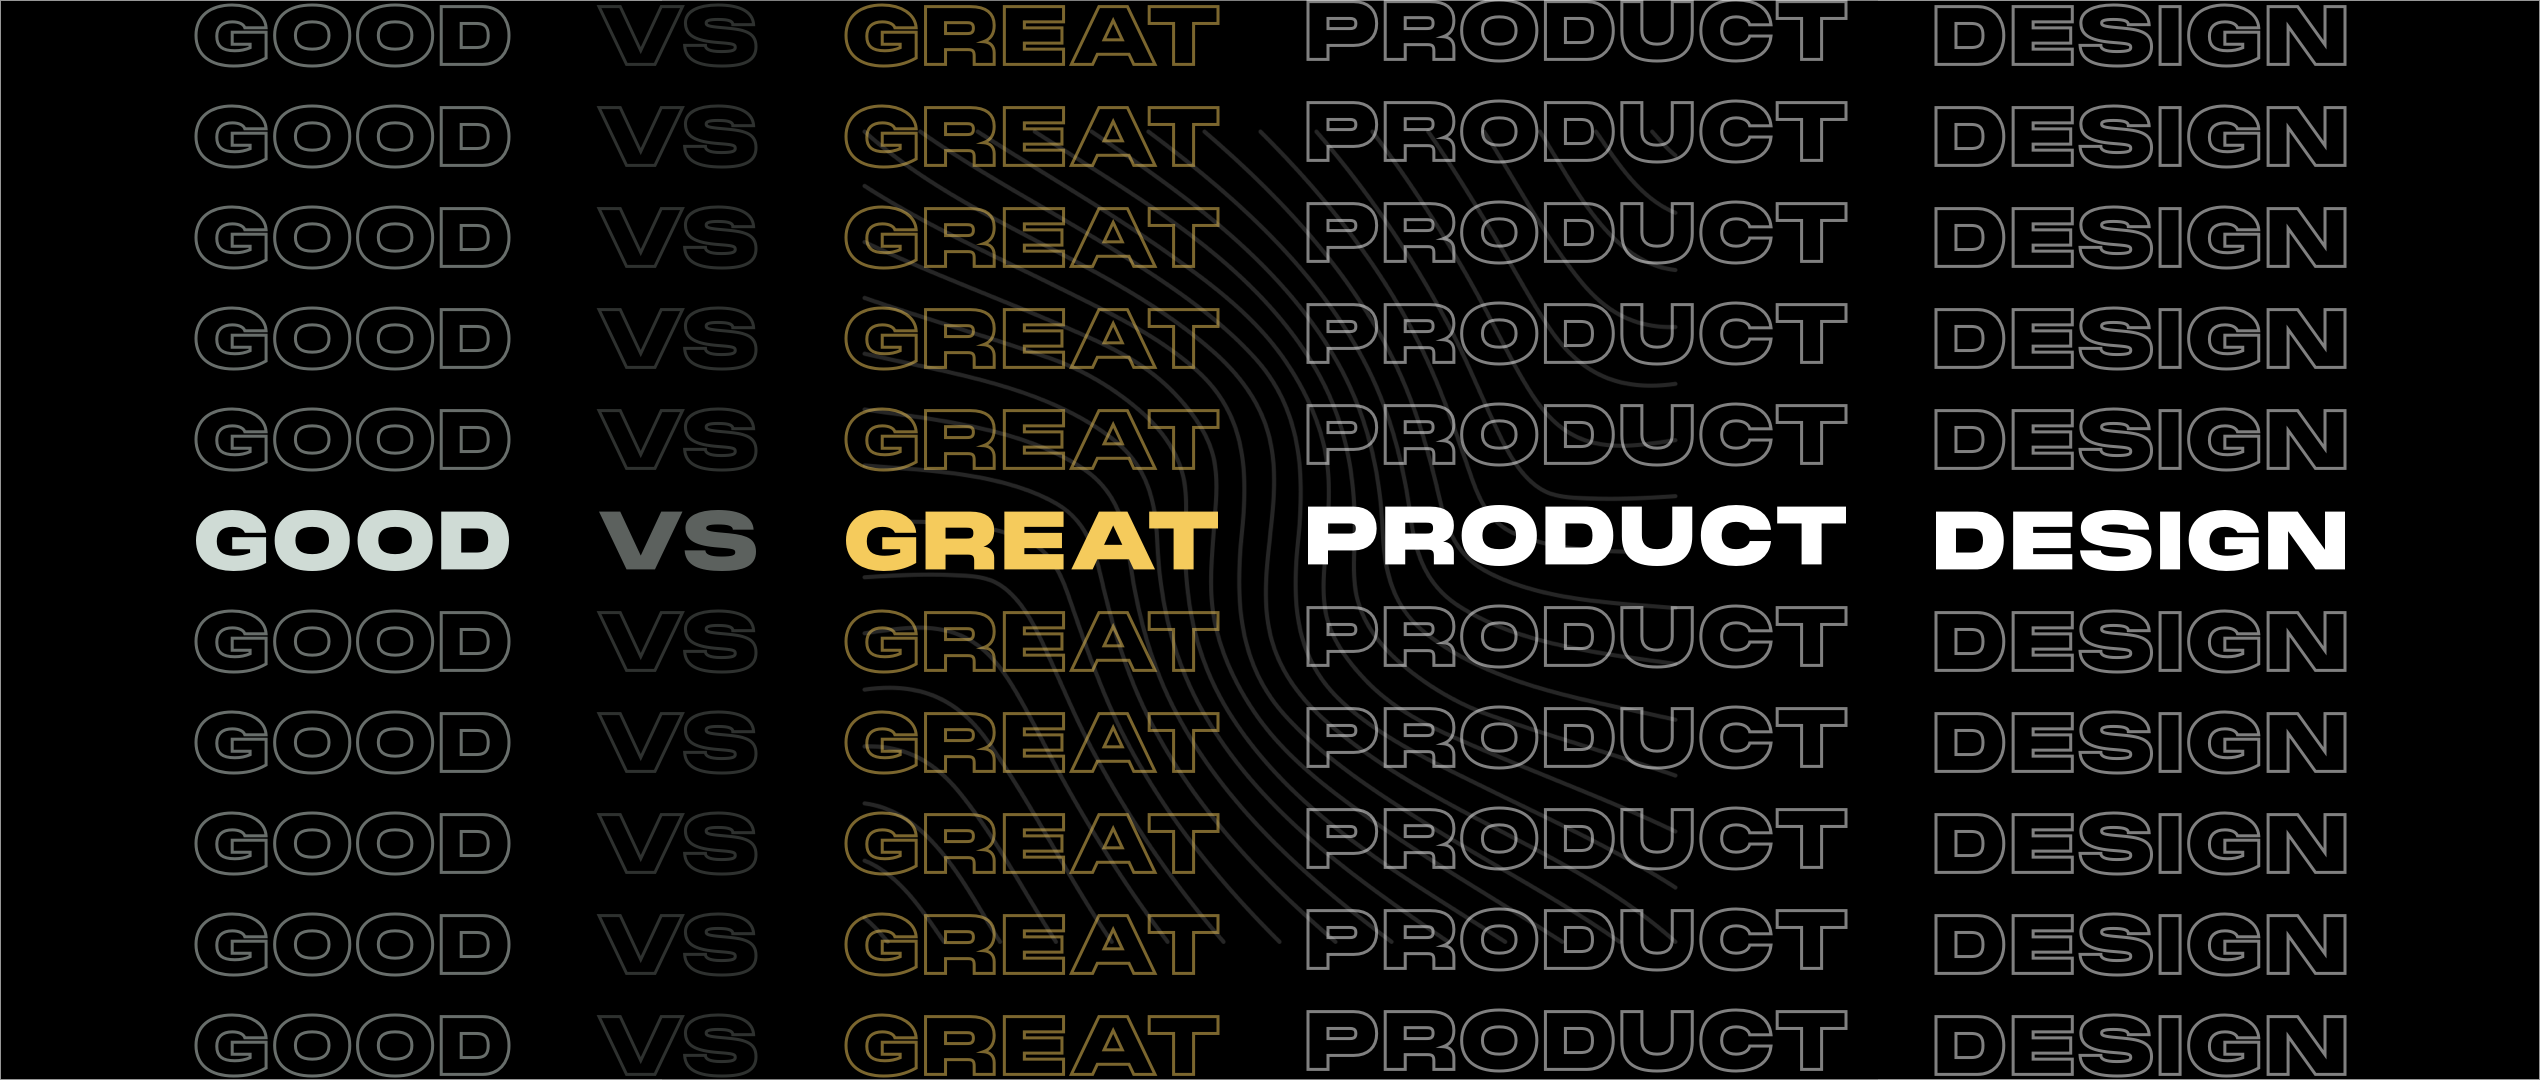 Typography stating Good vs Great Product Design